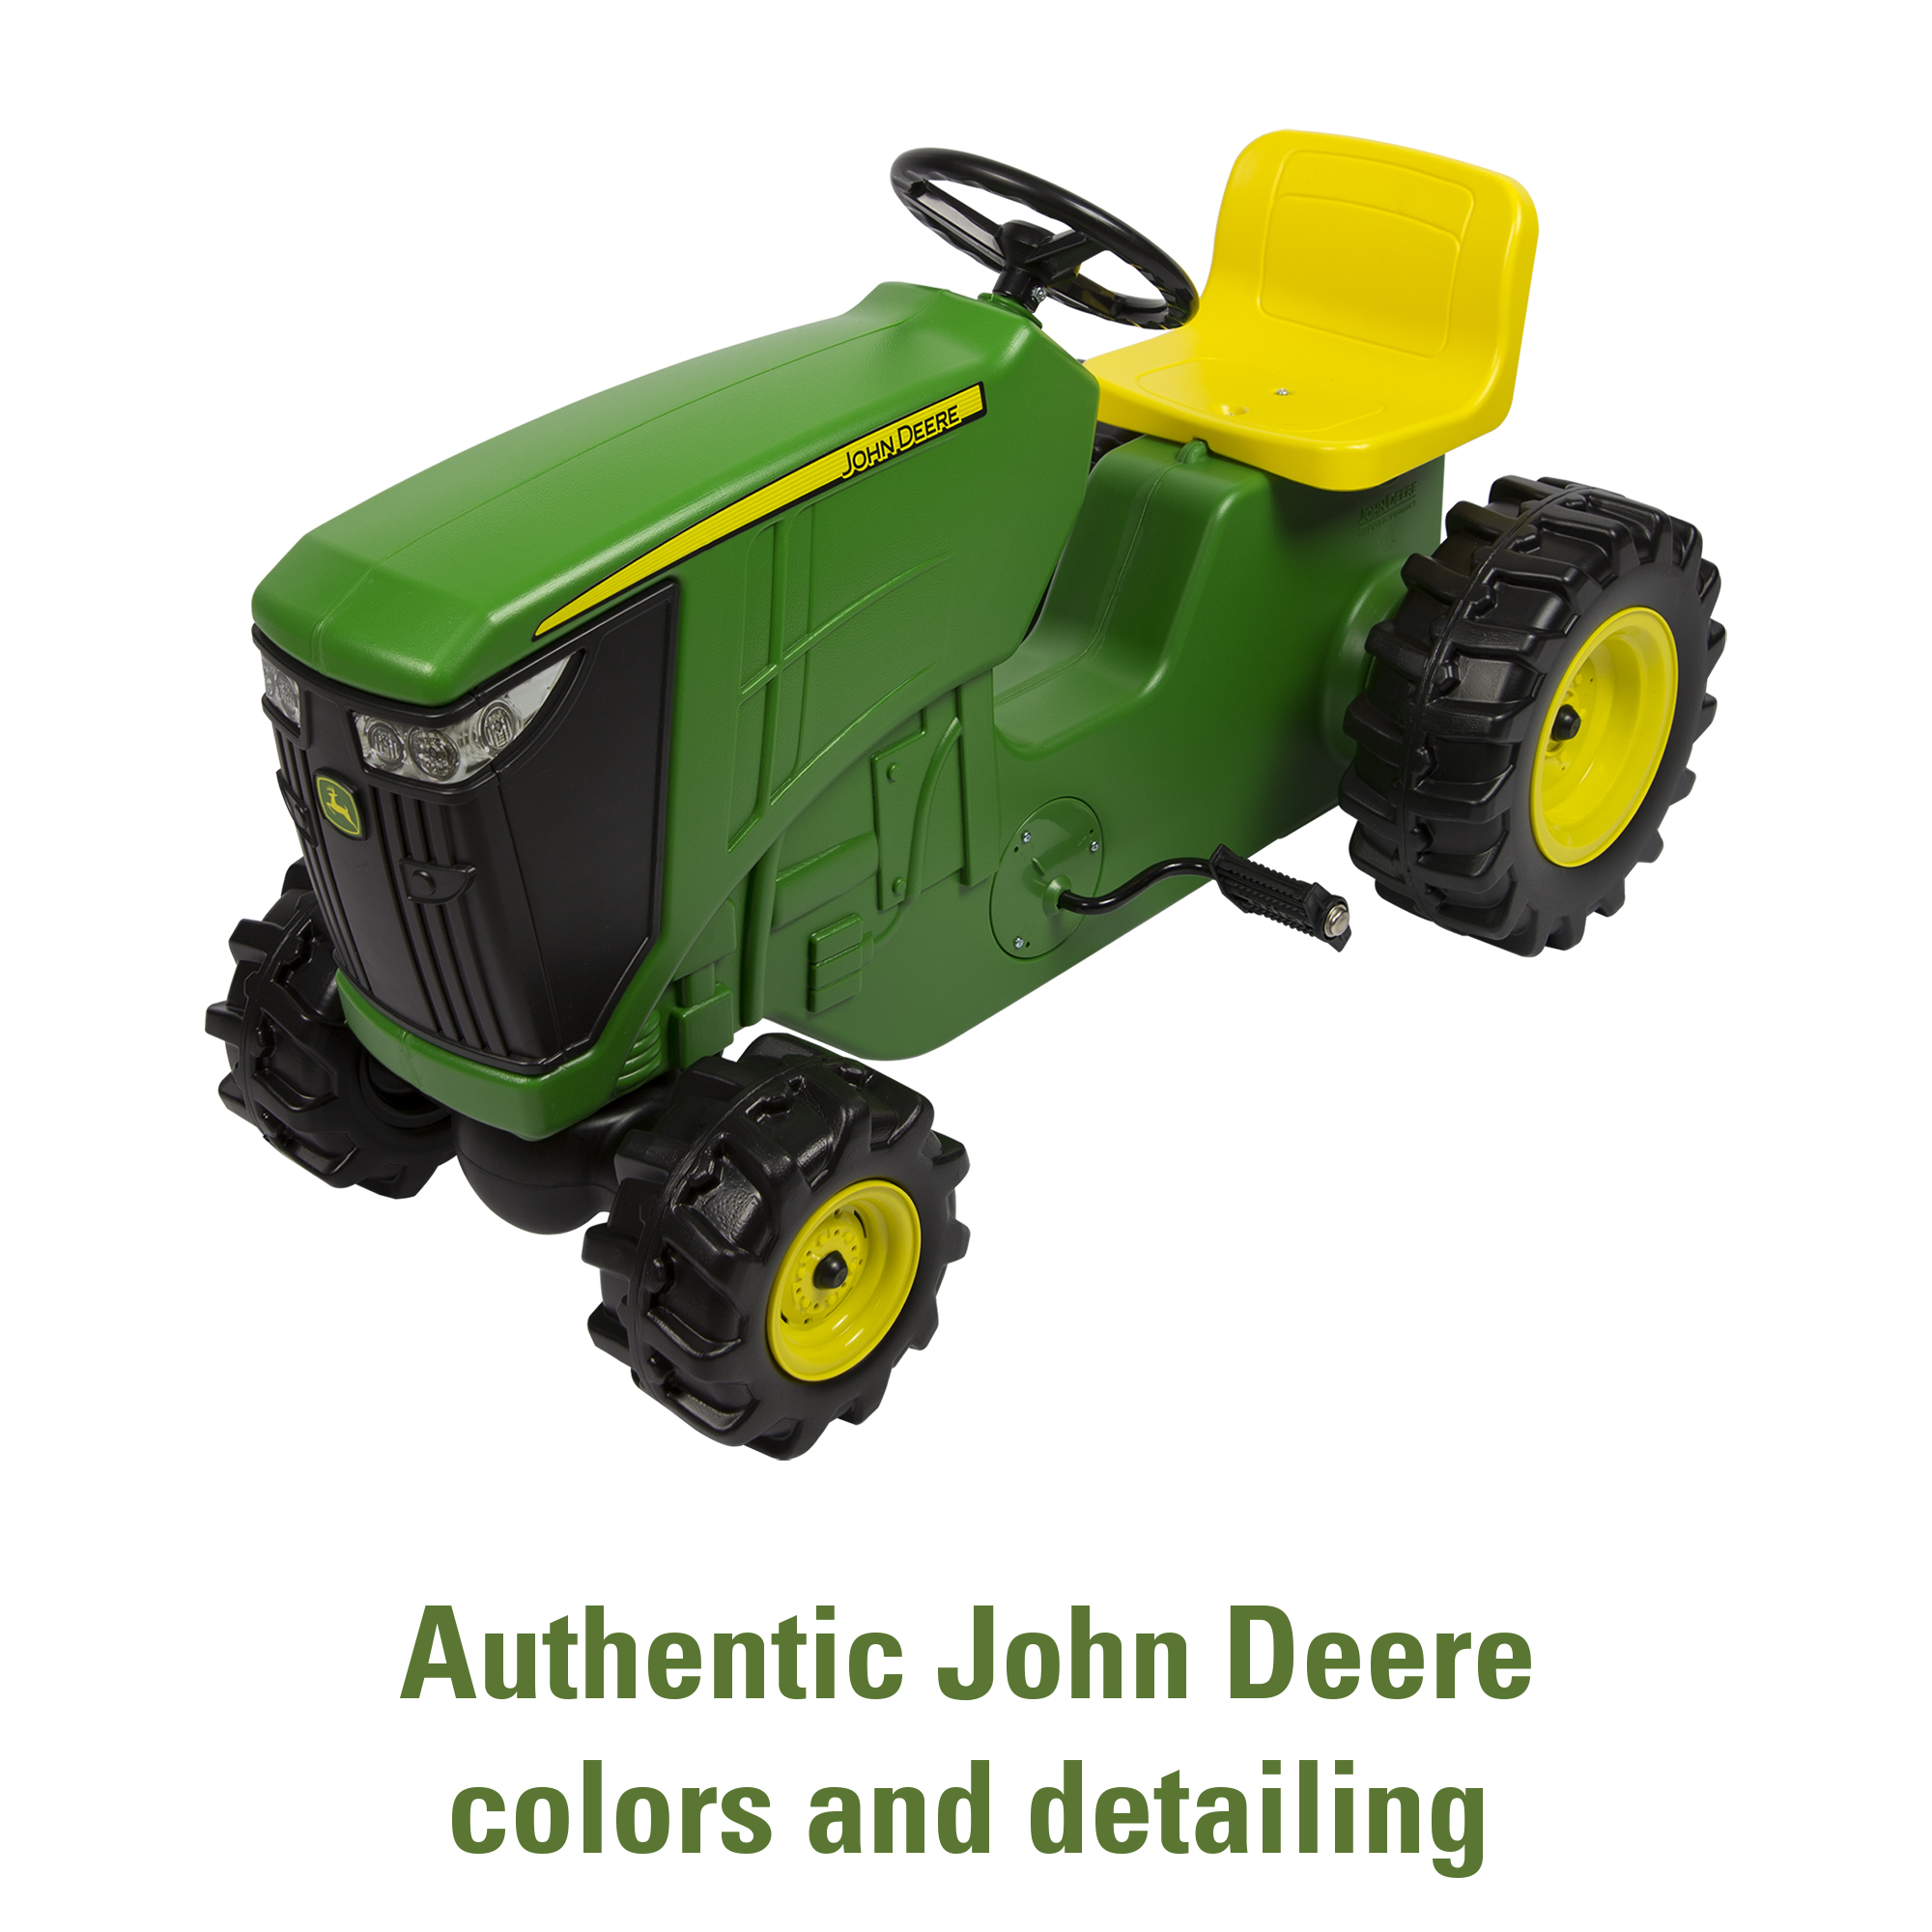 John Deere Pedal Powered Tractor, Kids Ride-On Toy Tractor, Green by TOMY International